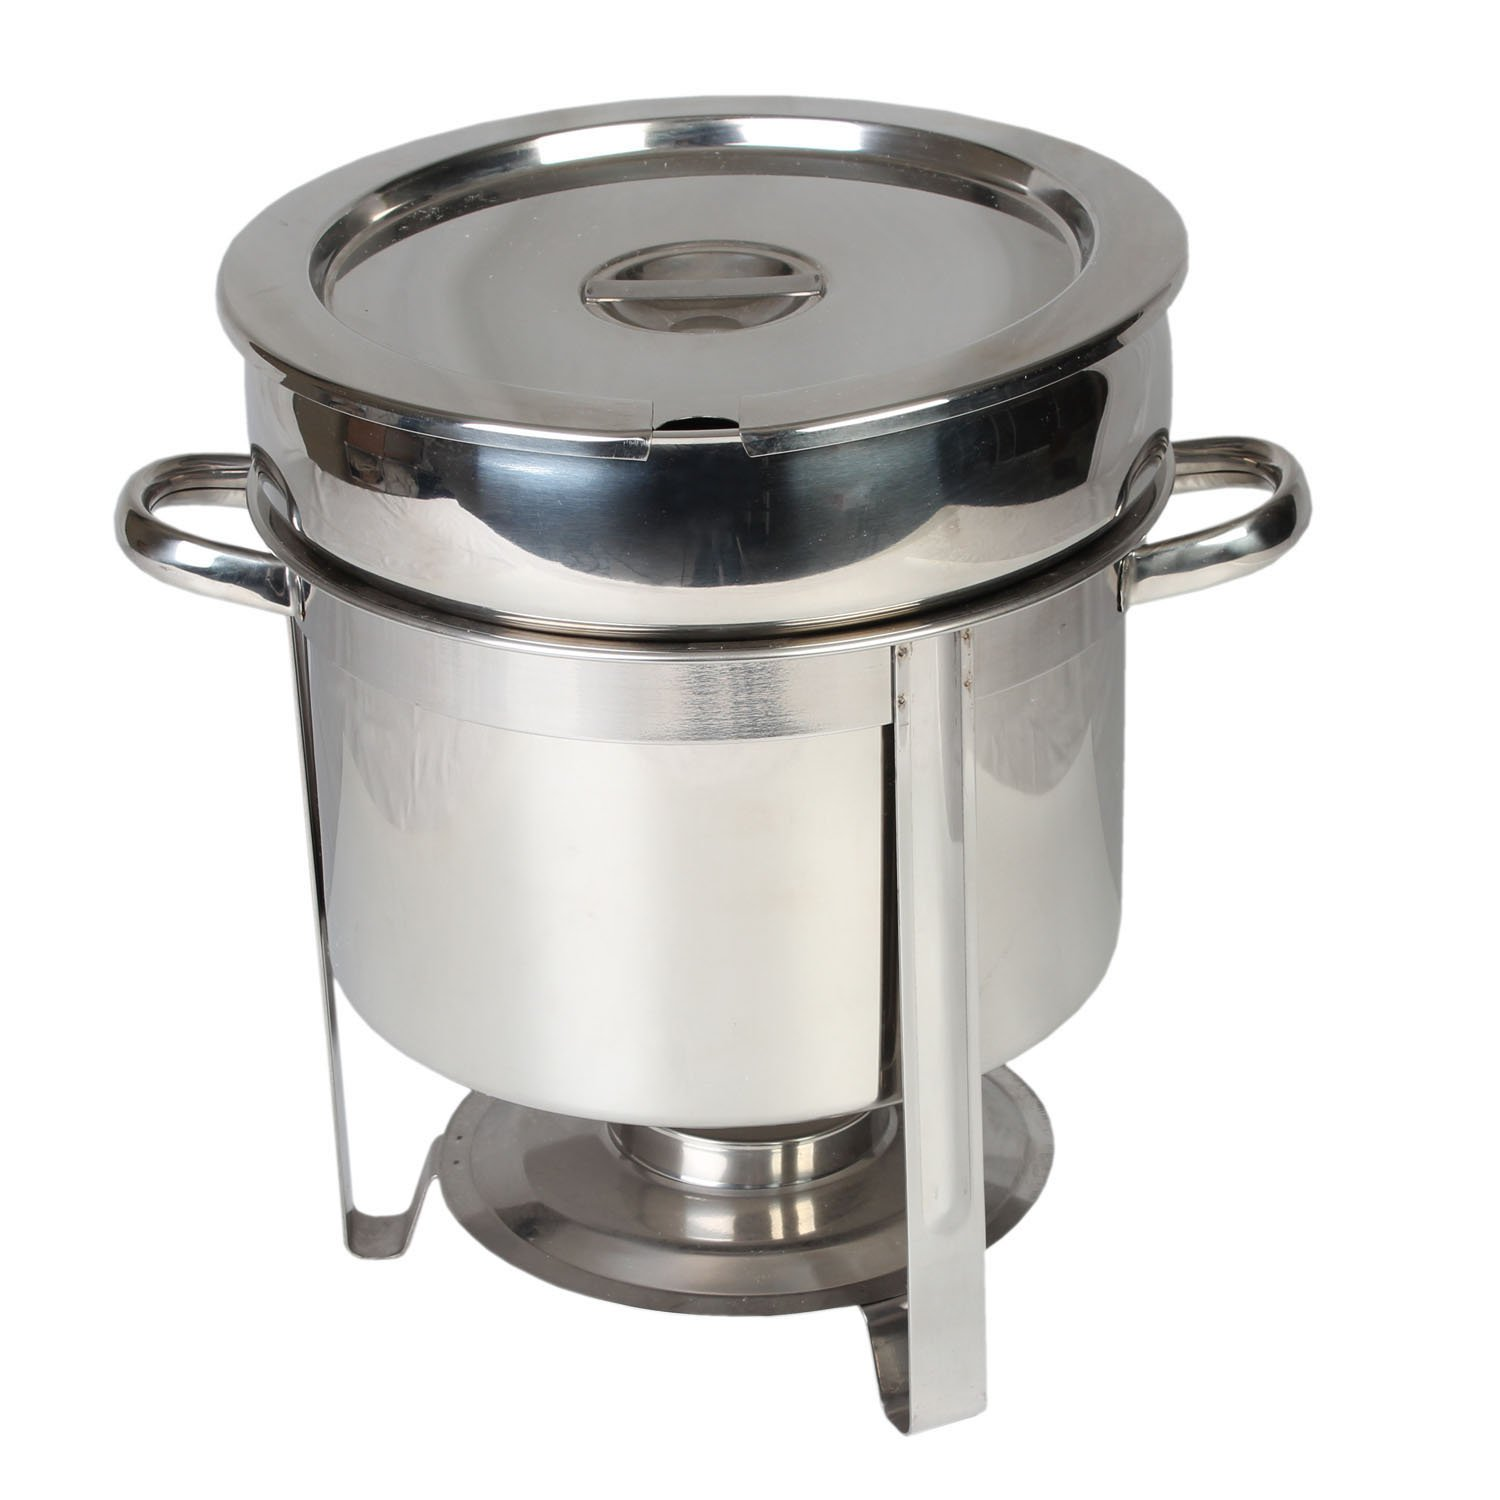 Excellante Stainless Steel 11-Quart Marmite Chafer Thunder Group SLRCF8311